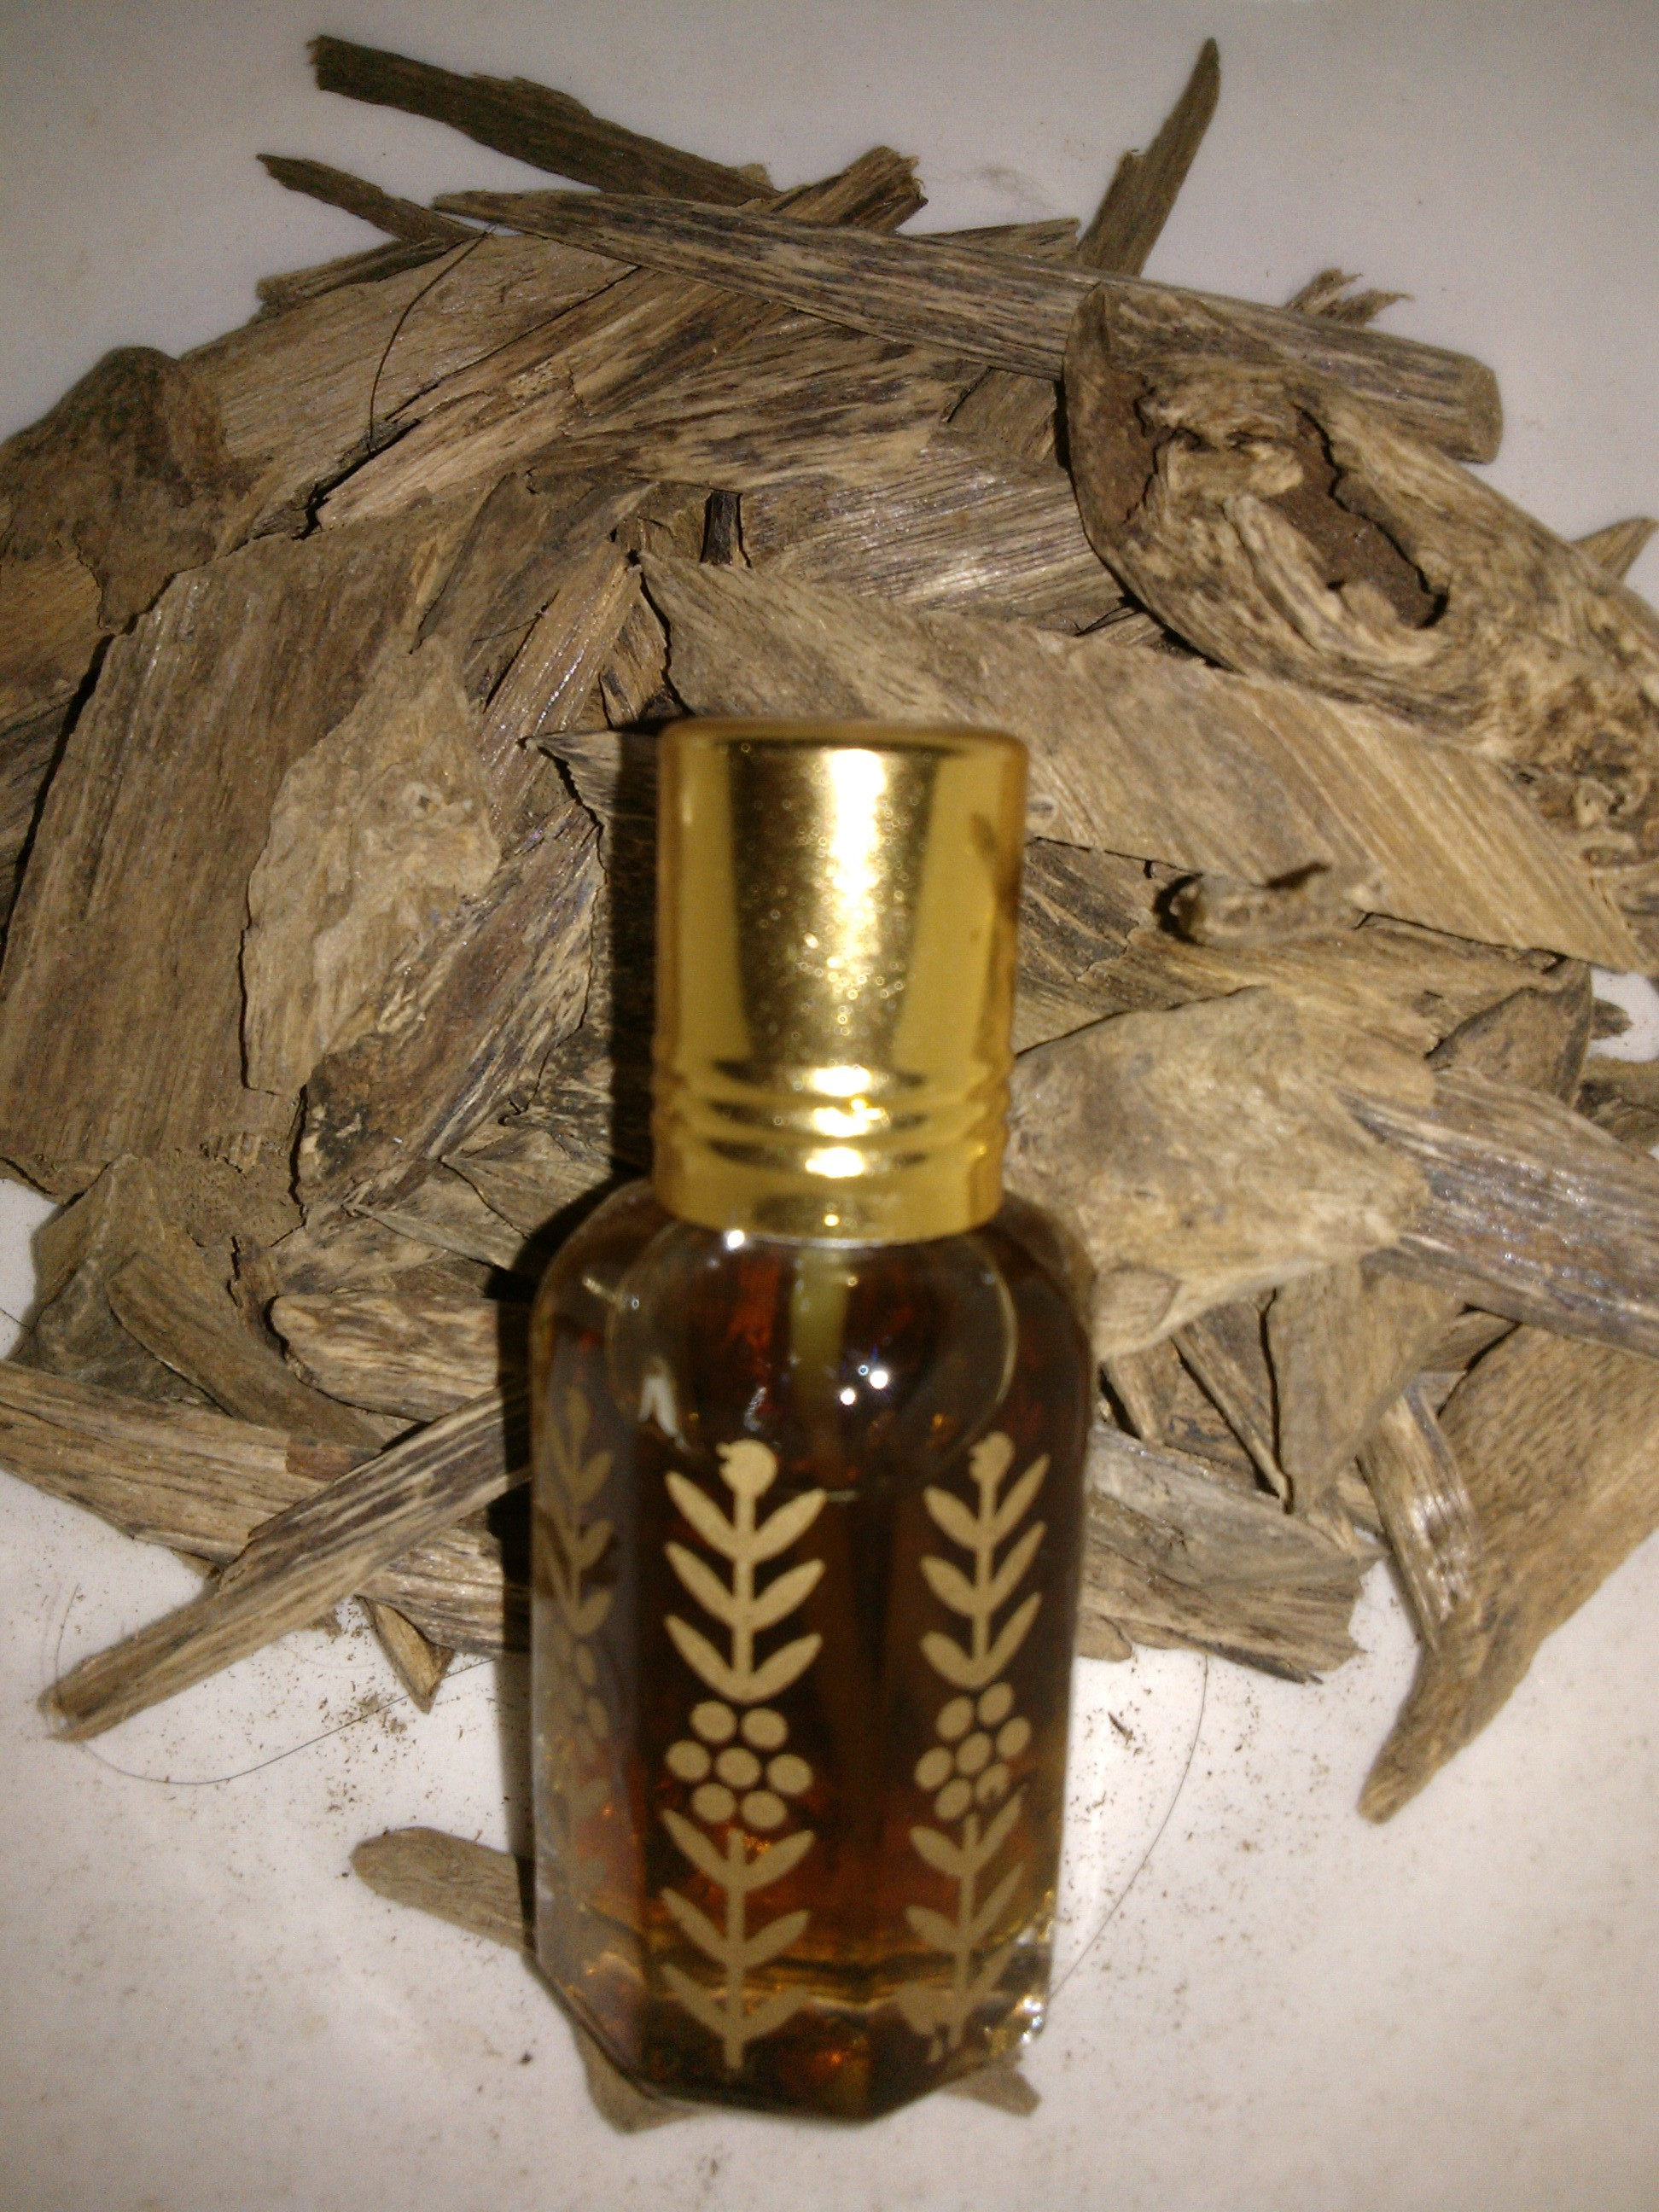 agarwood-oil